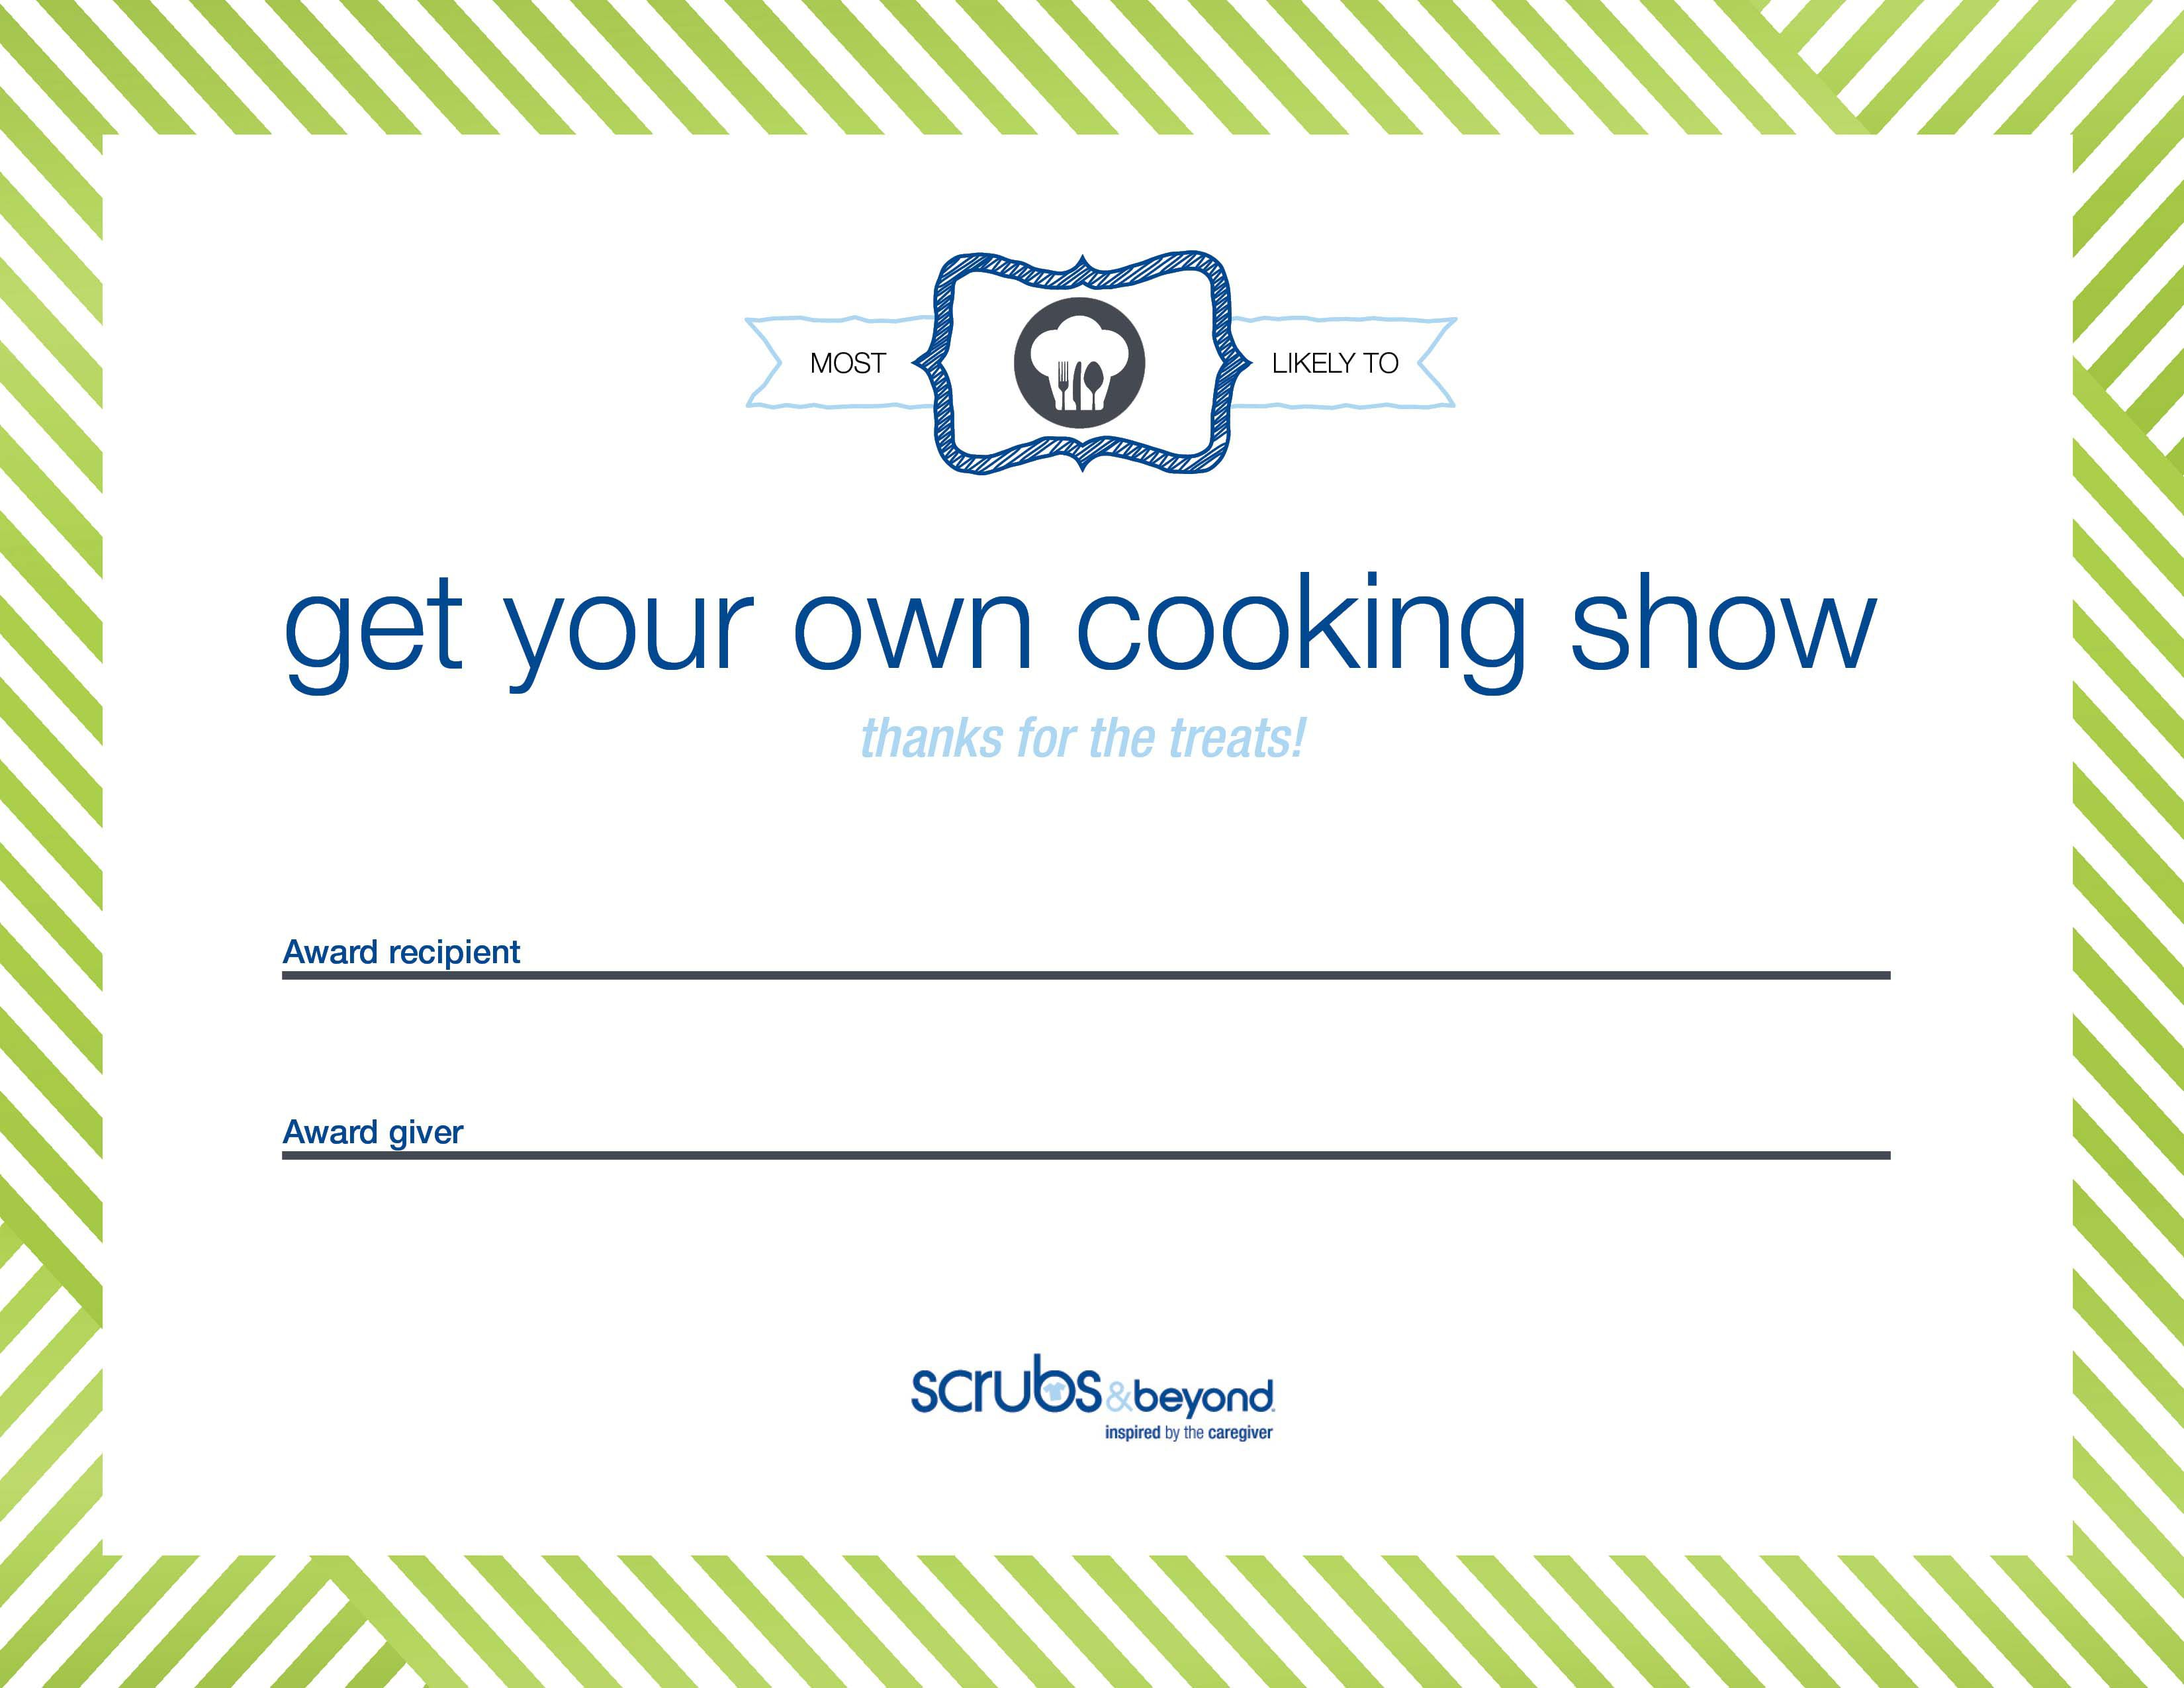 Certificate awards scrubs and beyond chef certificate box shadow 1betcityfo Image collections